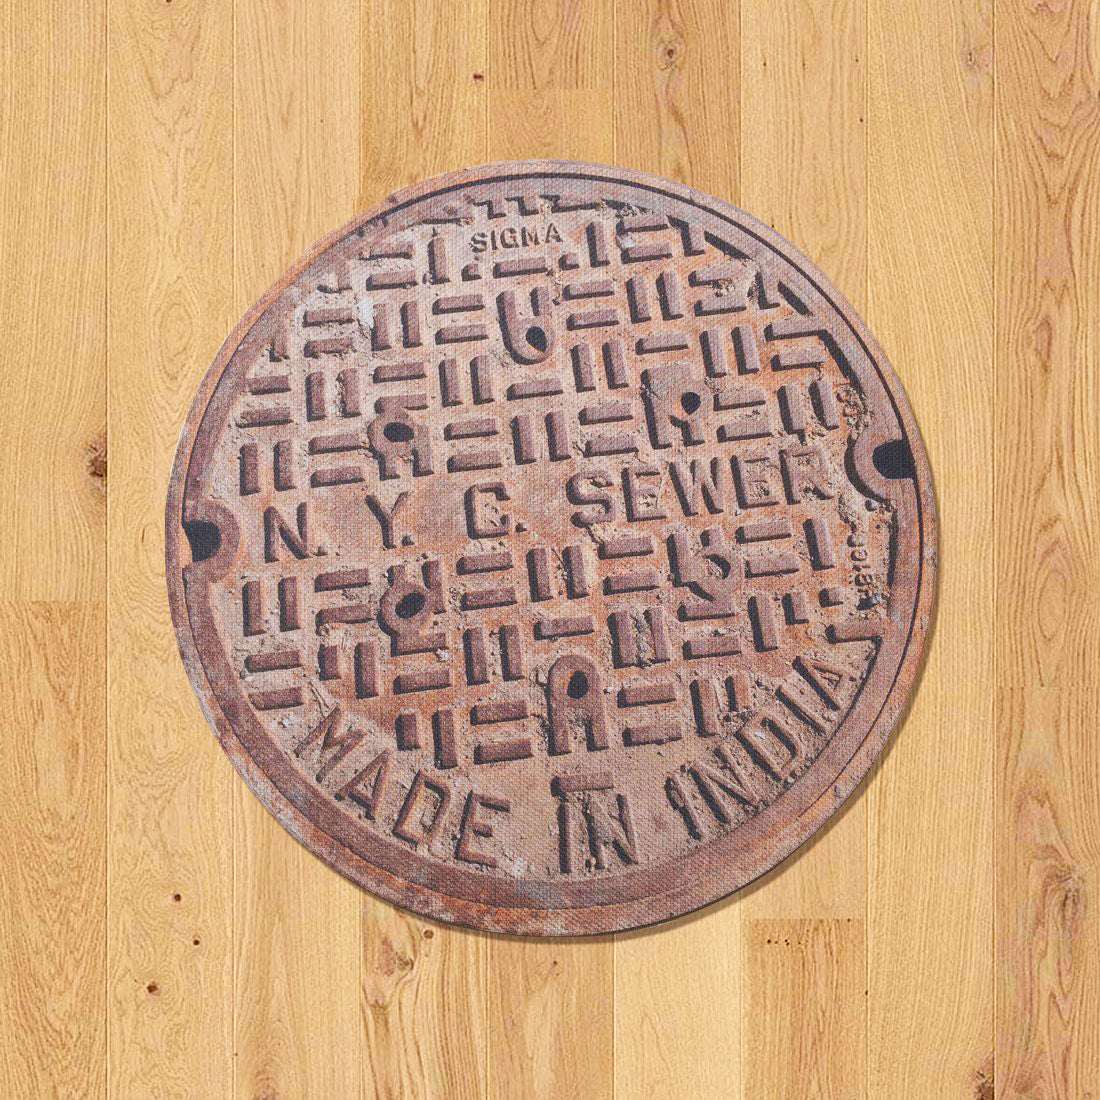 NYC SERIES - Sewer Cover Doormat, Trivet, Coaster - Made in India - New York, NY